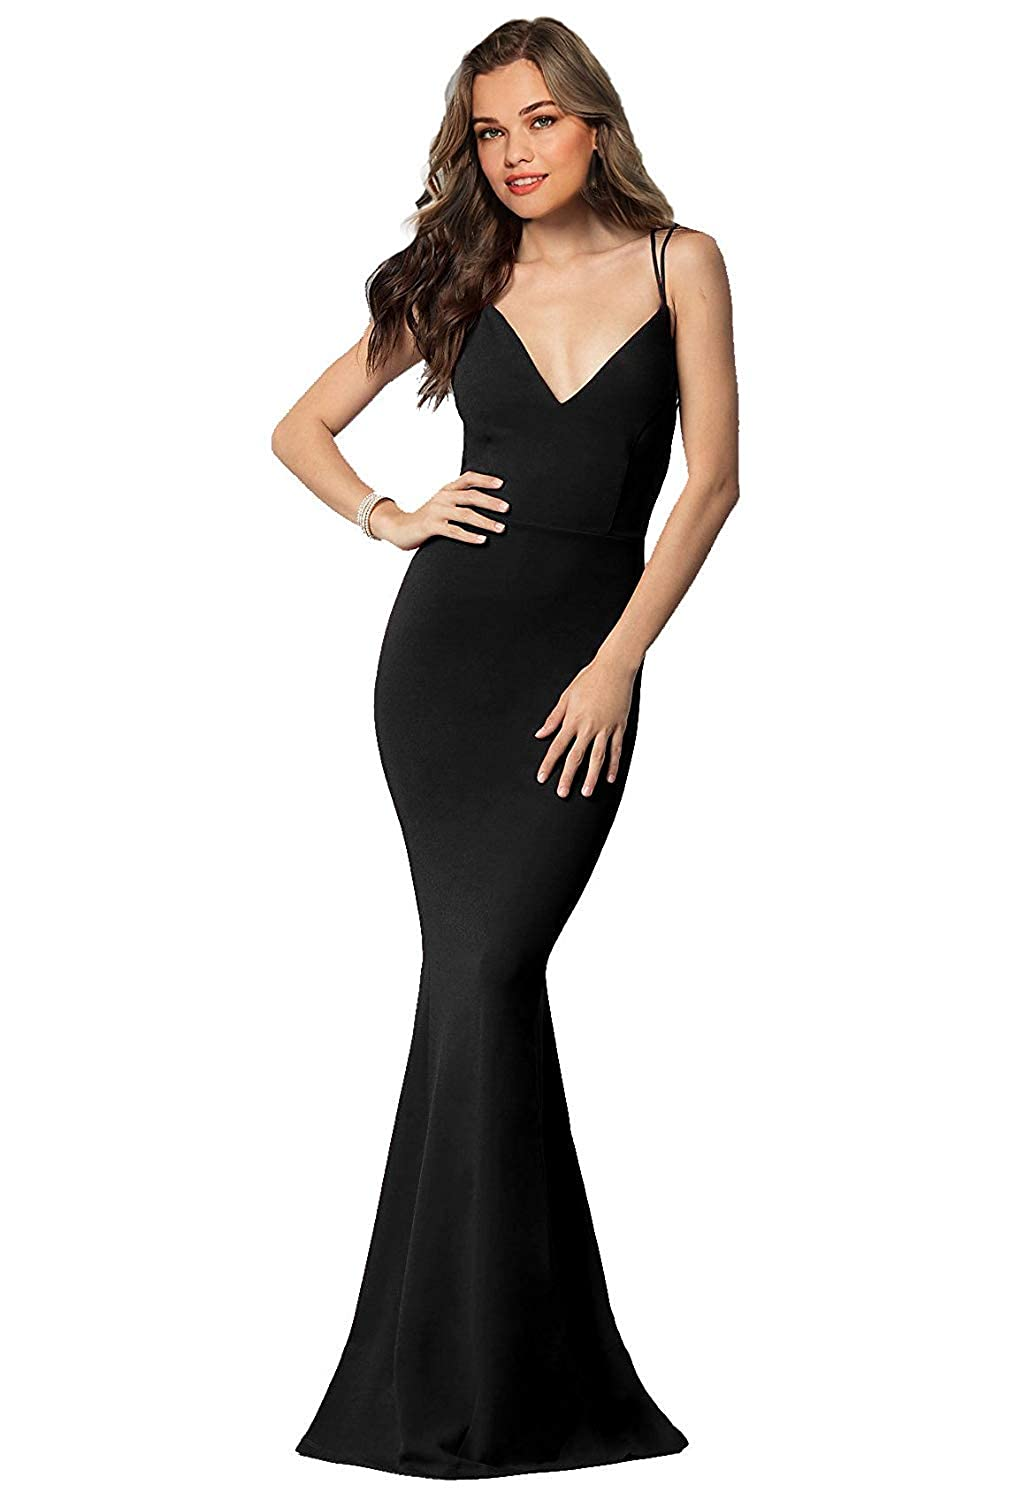 Black Sulidi Women's Long Sexy Mermaid Prom Dresses Backless Evening Formal Party Ball Gowns